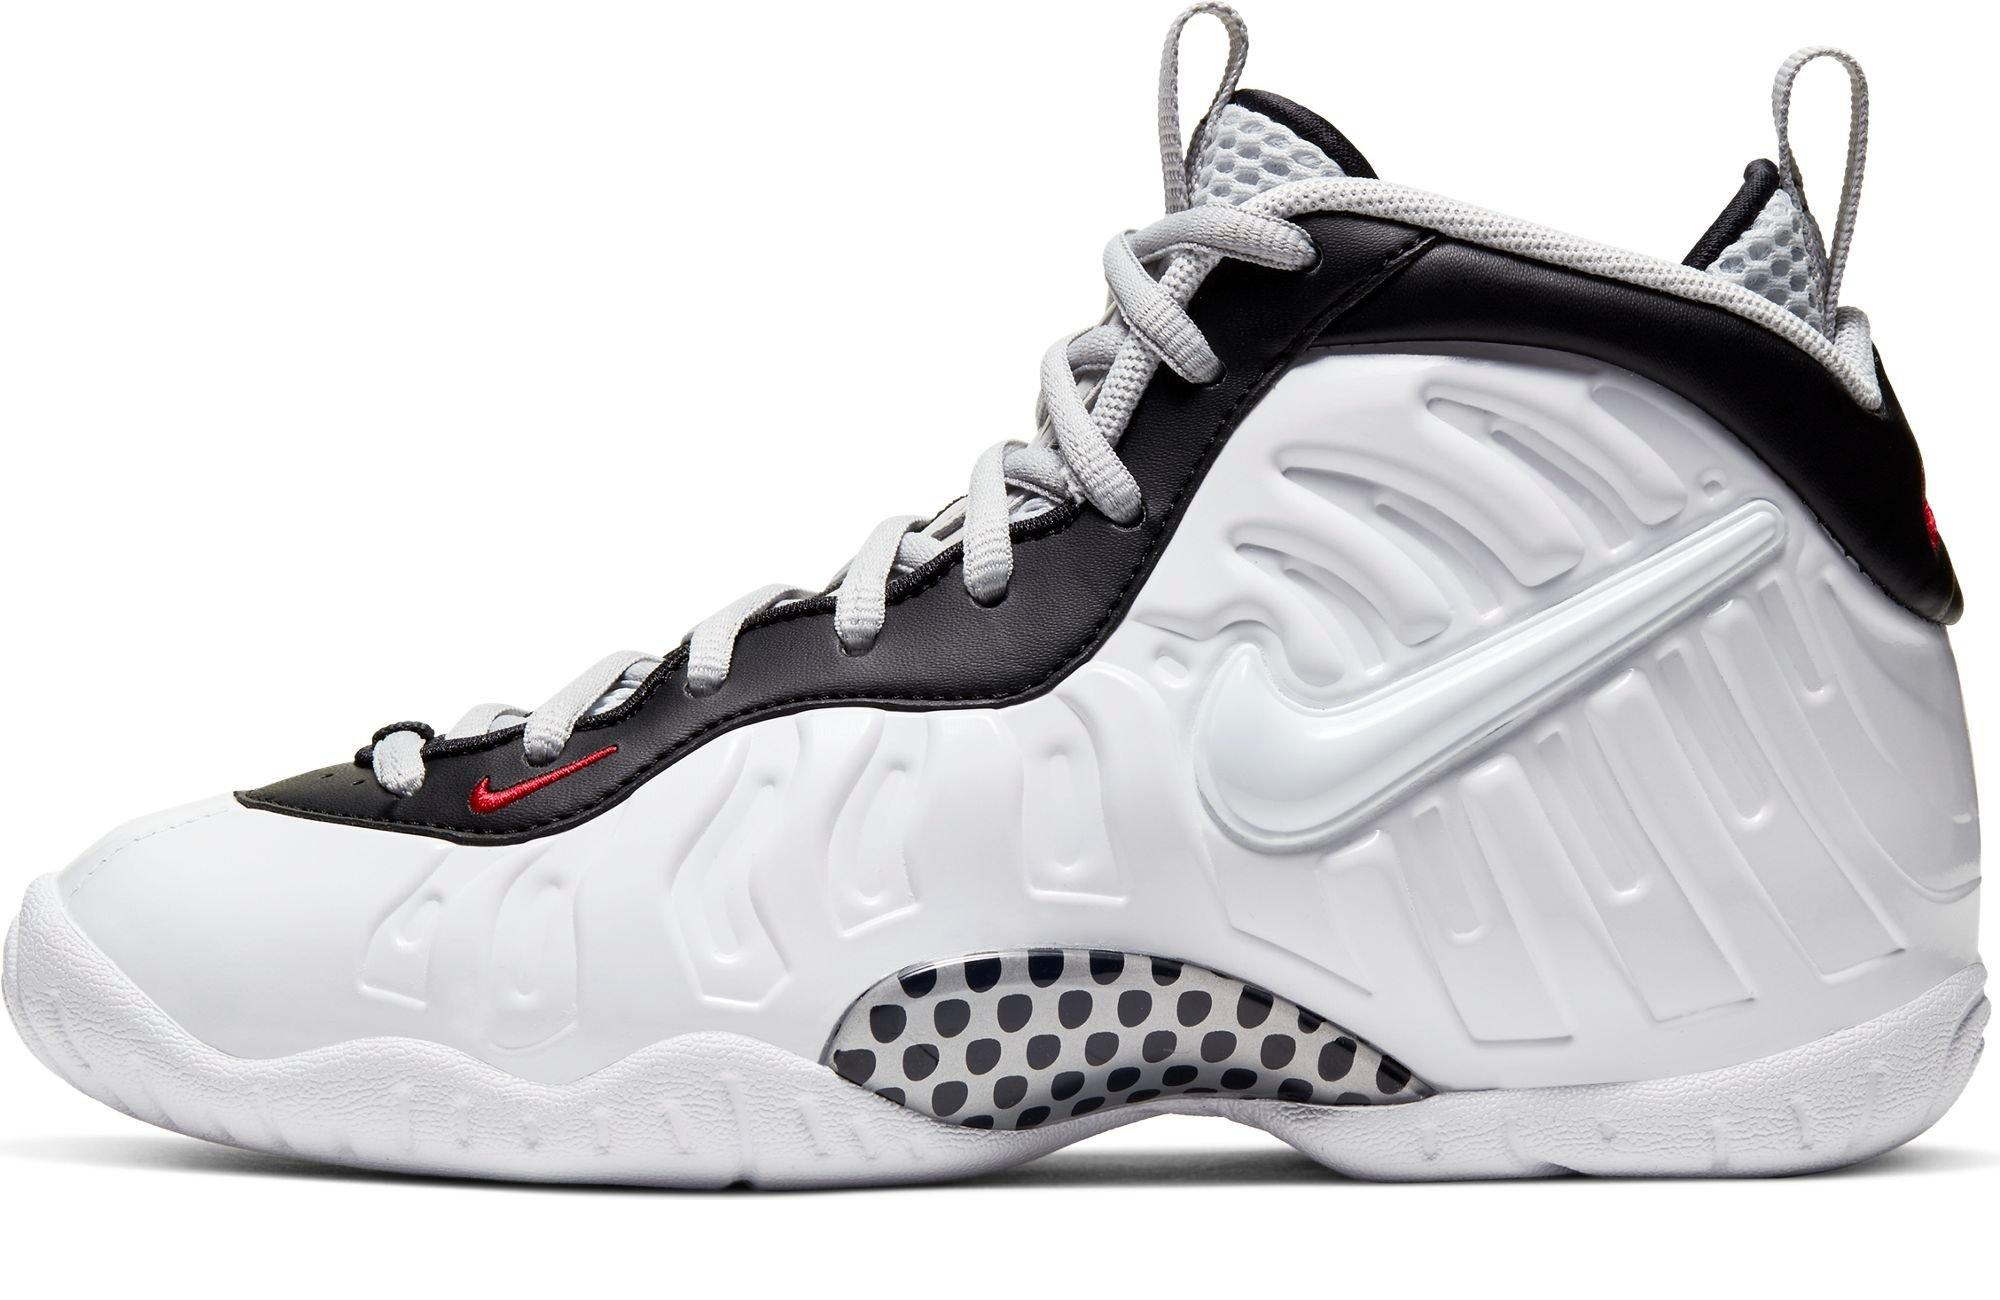 "Nike Air Foamposite and Little Posite Pro ""White/Black/University Red"" left"